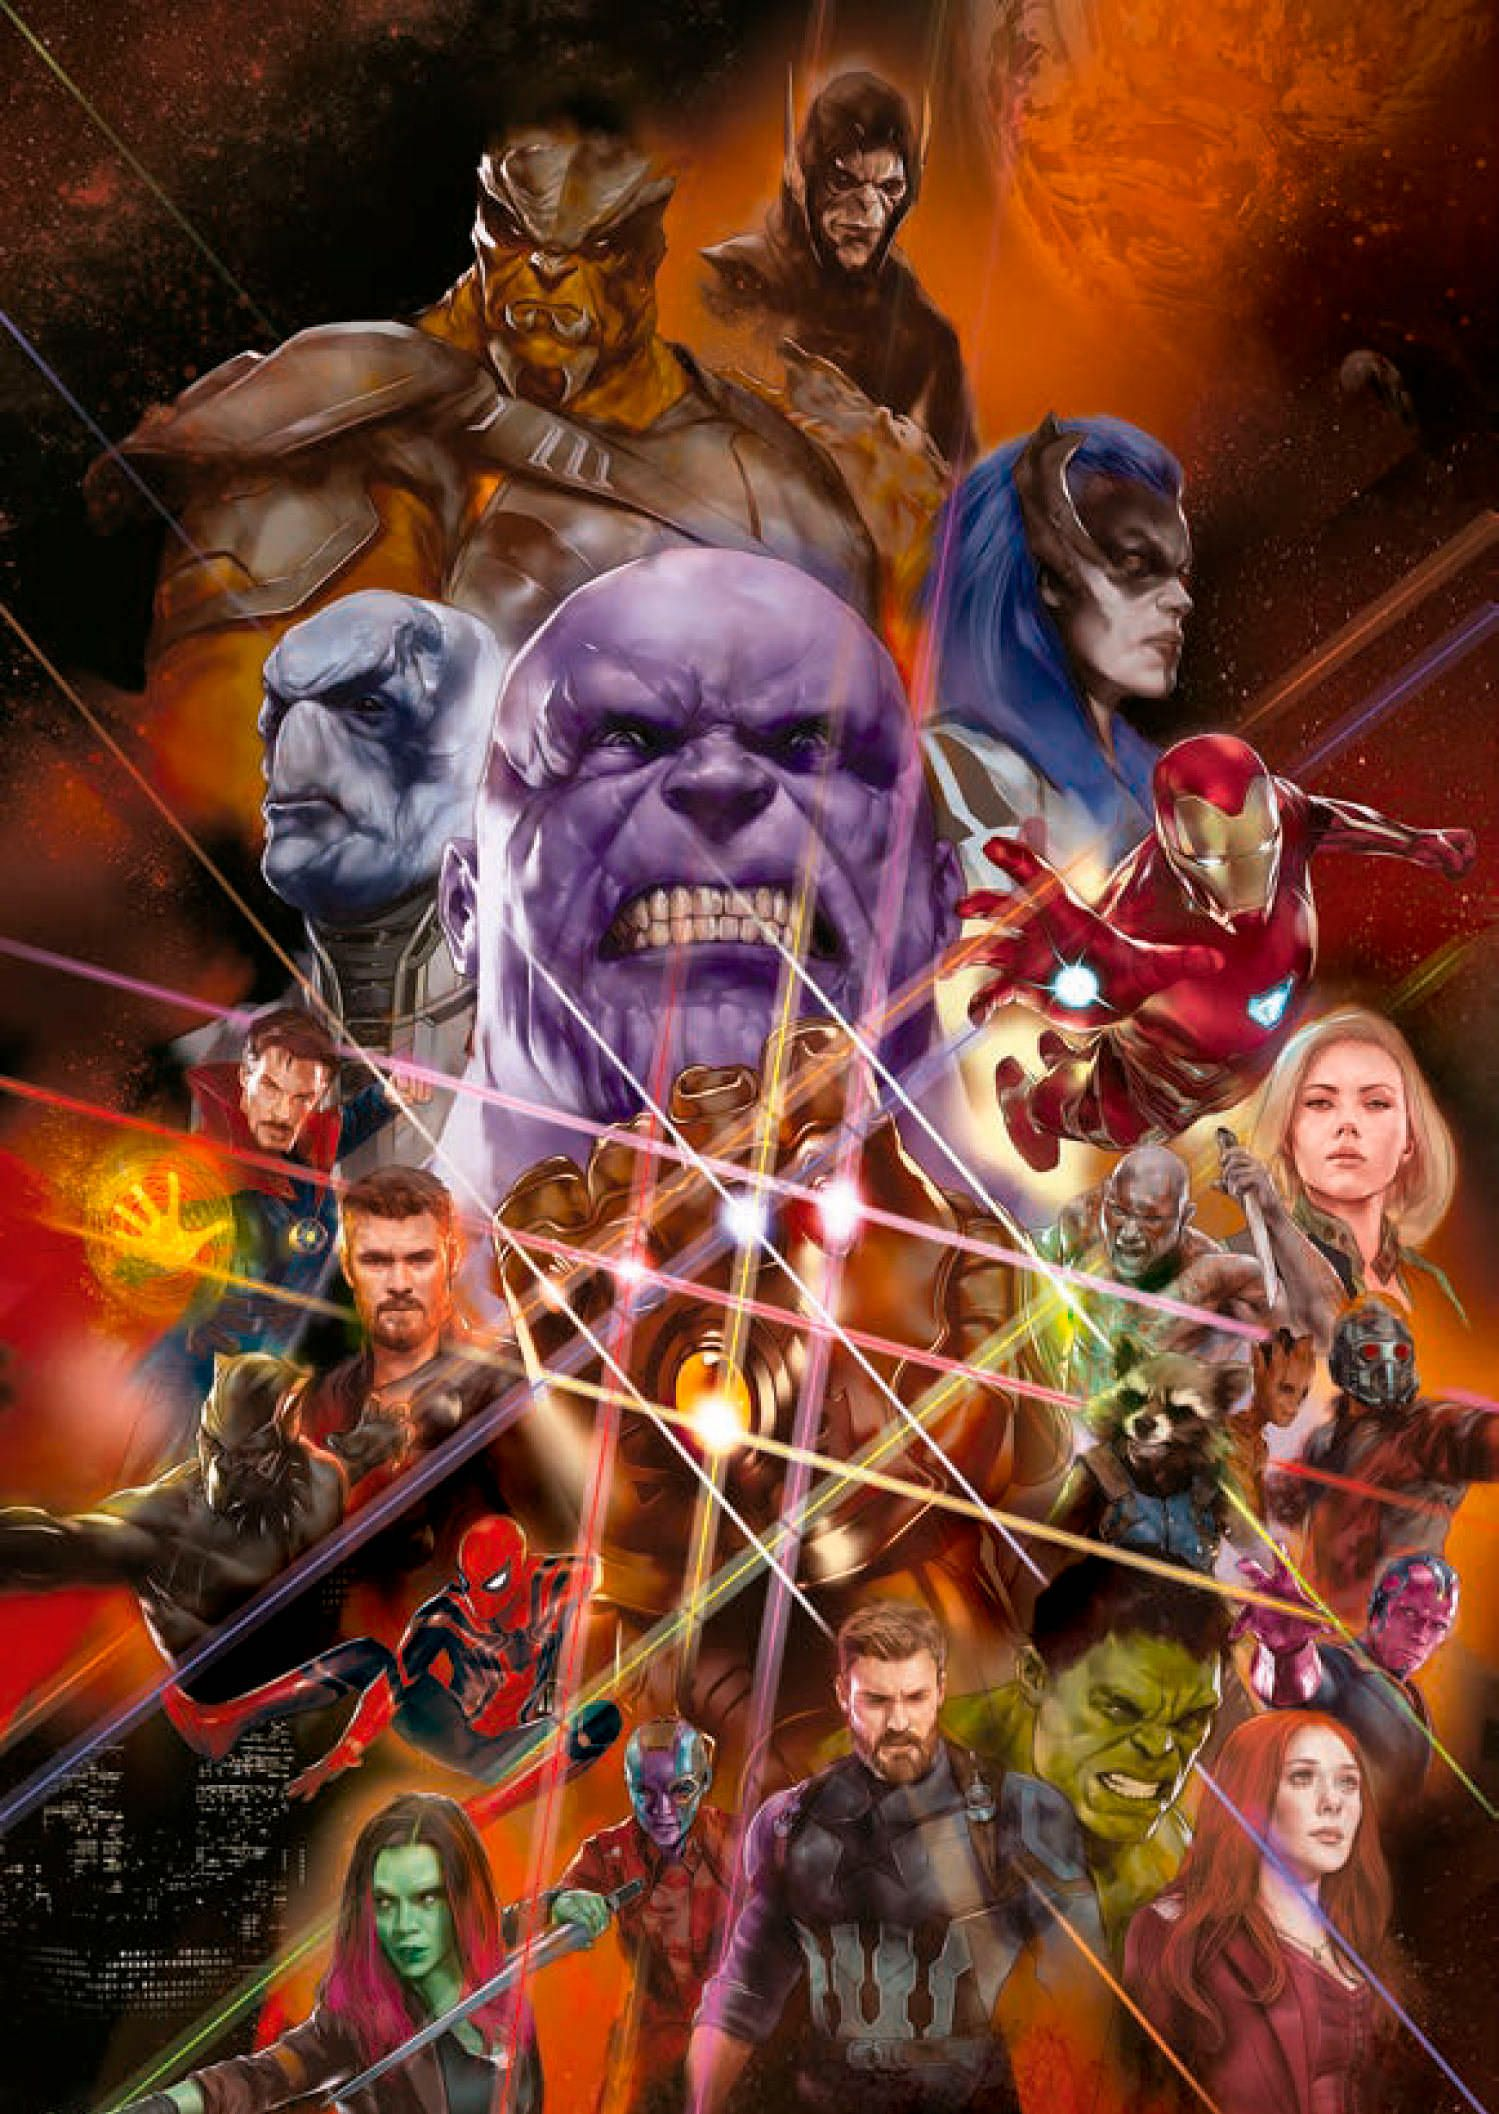 promo art poster for 'avengers: infinity war' inspired by the